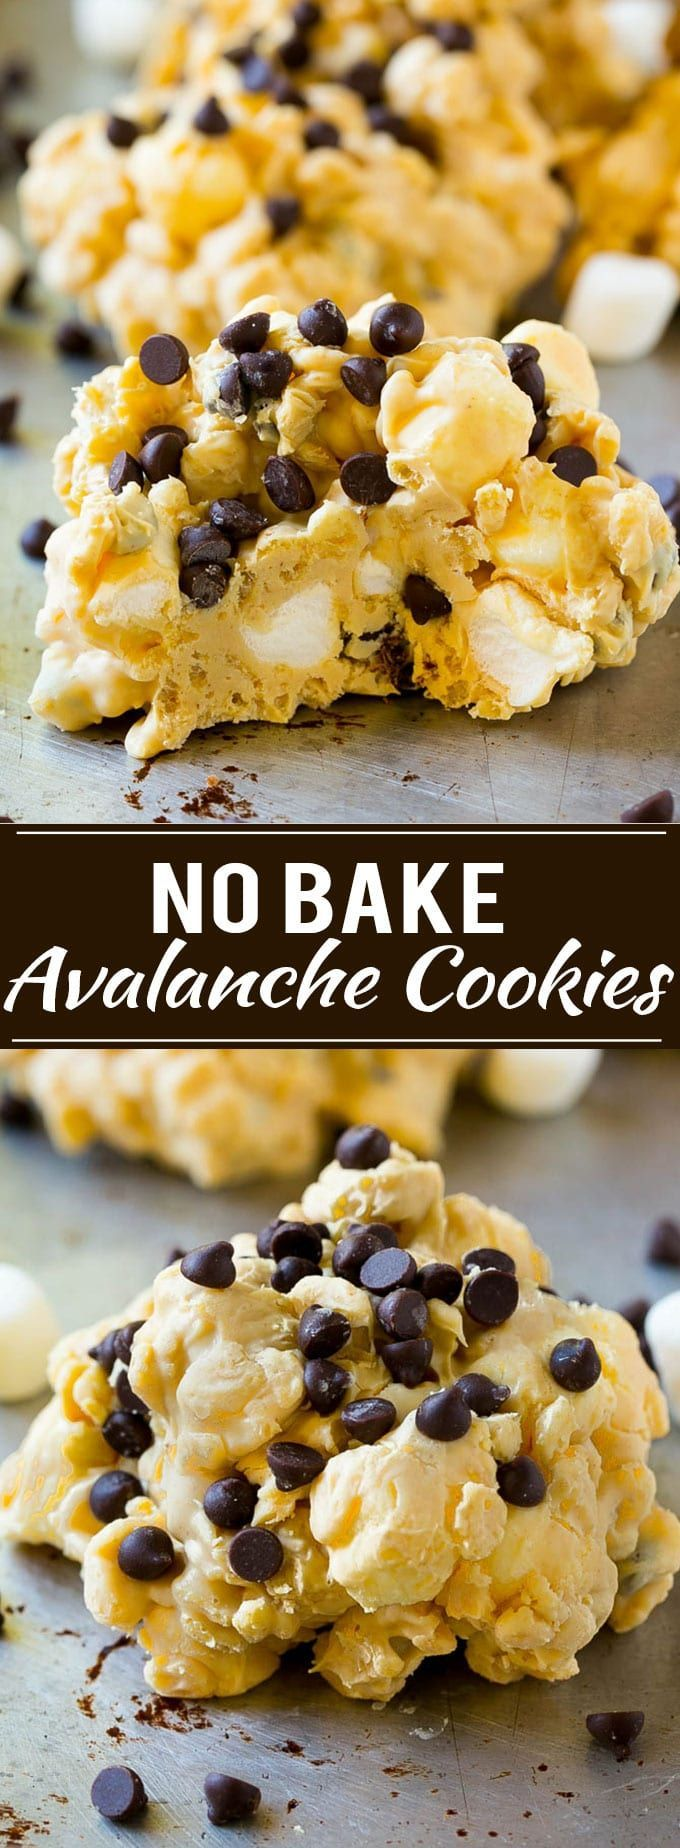 Avalanche Cookies Recipe   No Bake Cookie Recipe   Easy Cookie Recipe   Avalanche Bark